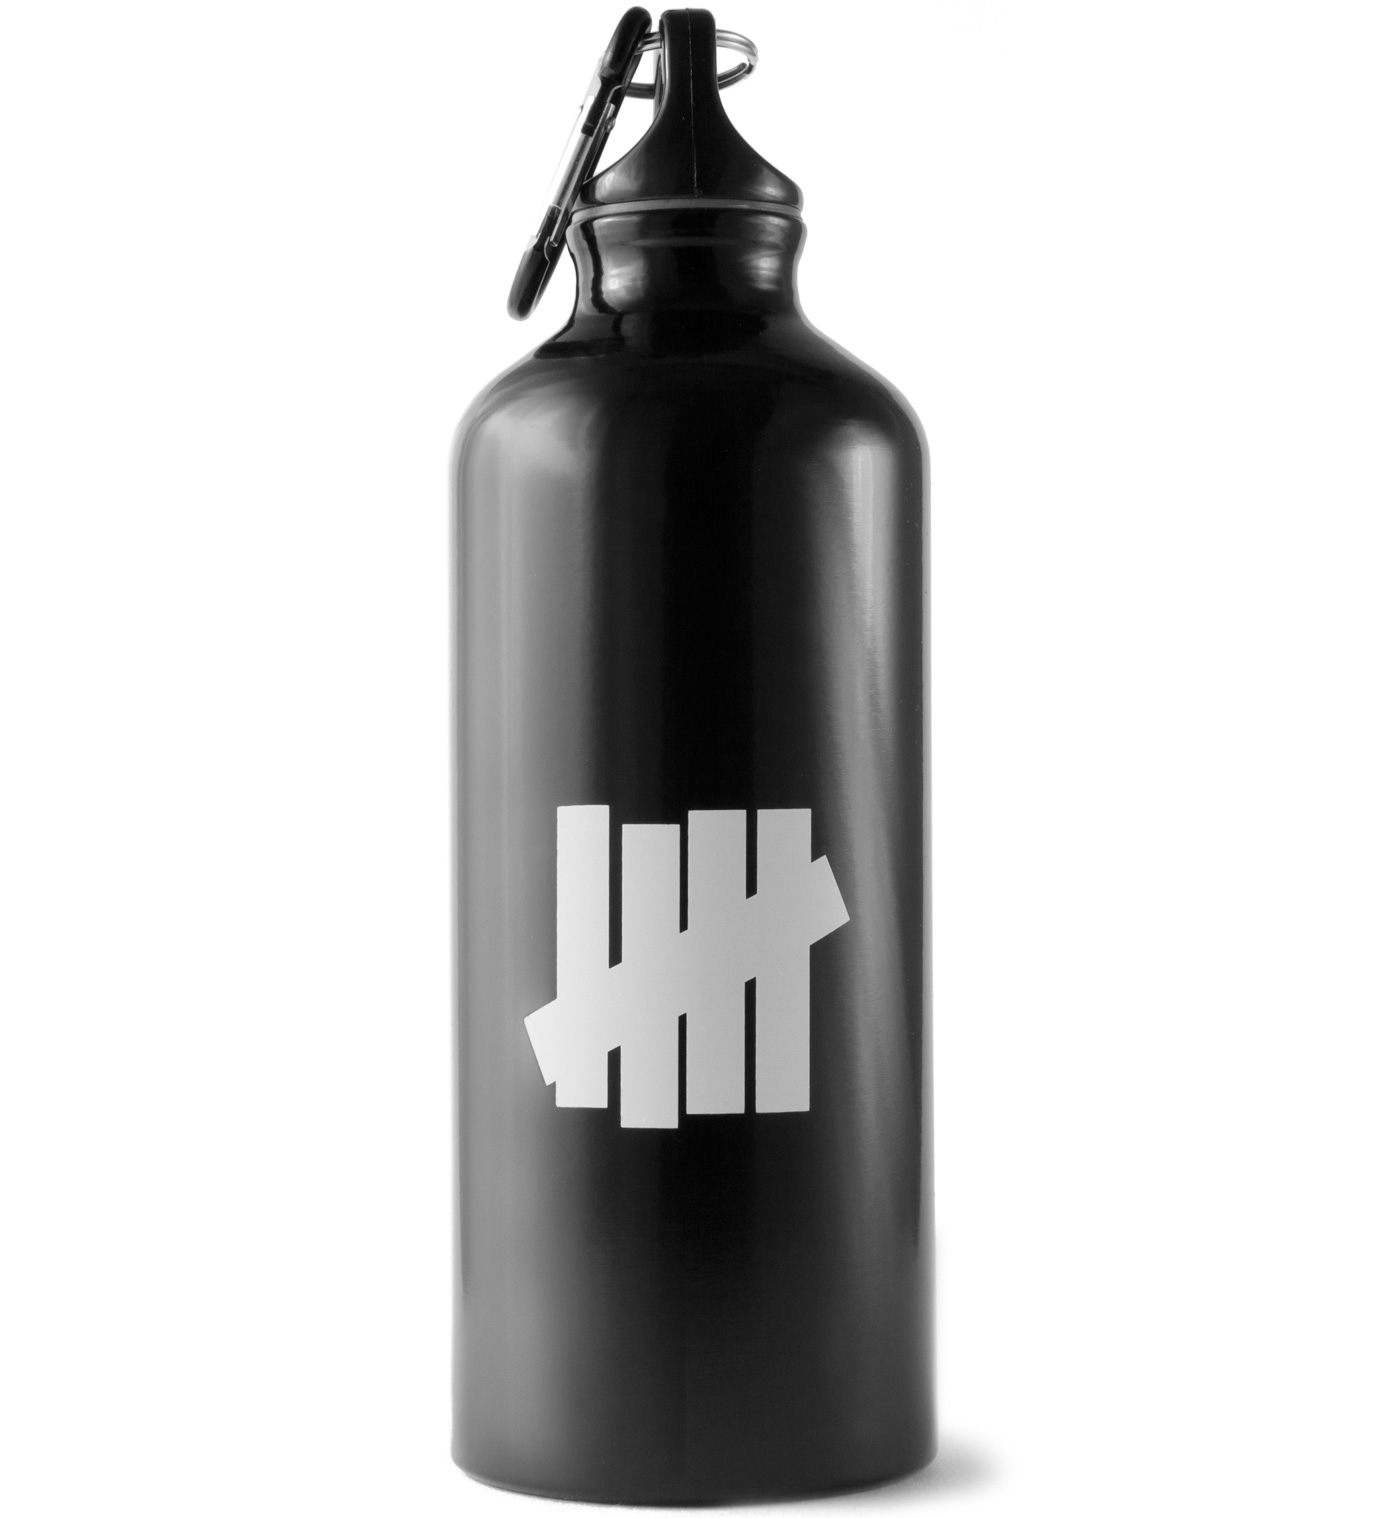 UNDEFEATED Black 10 Years Aluminum Bottle